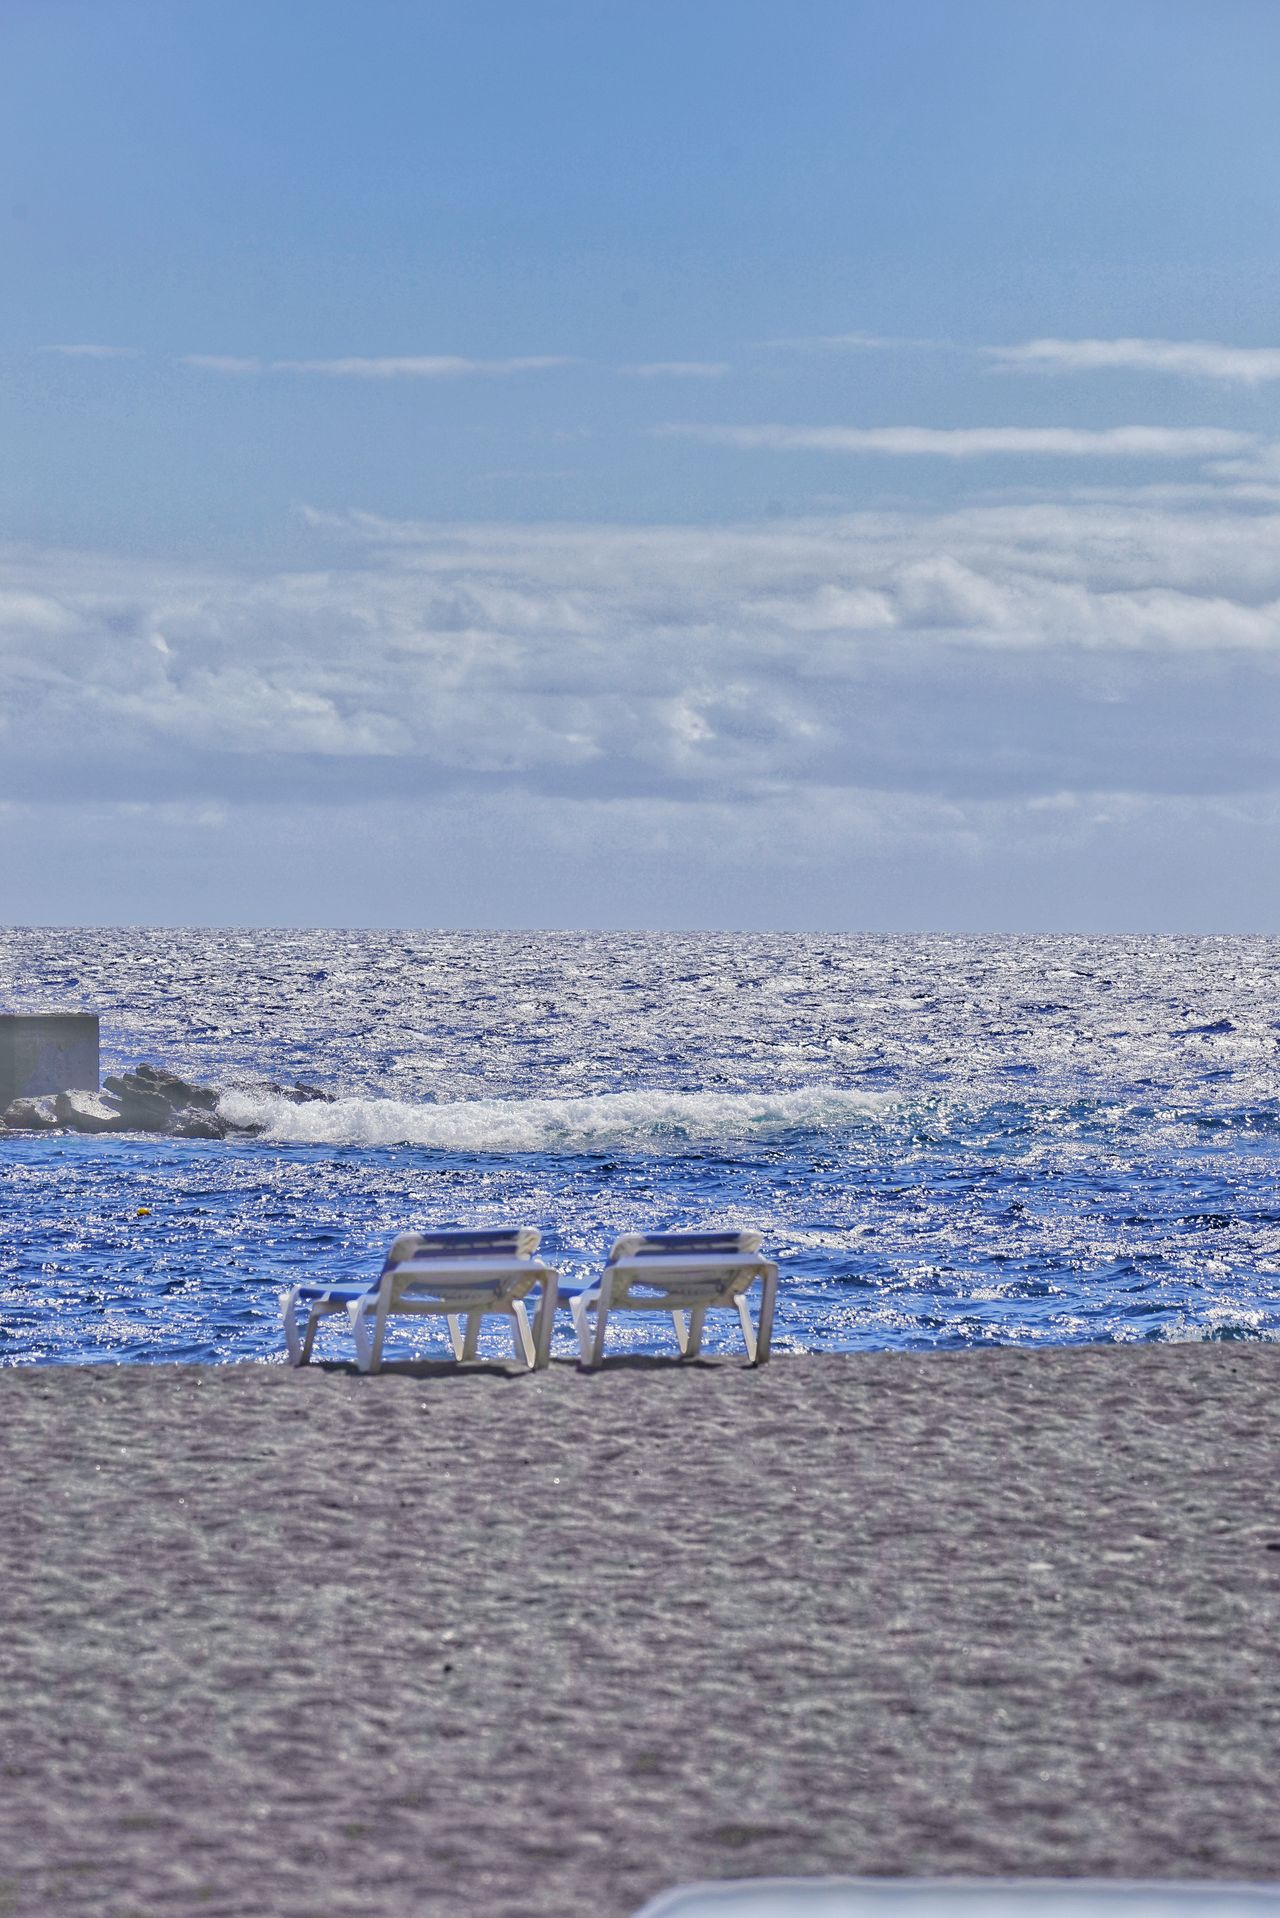 Beach Outdoors No People Day Sand Tranquility Arrangement Nature Sky Los Concajos La Palma, Canarias Travel Destinations Water Tranquility Beauty In Nature Cloud - Sky Chair